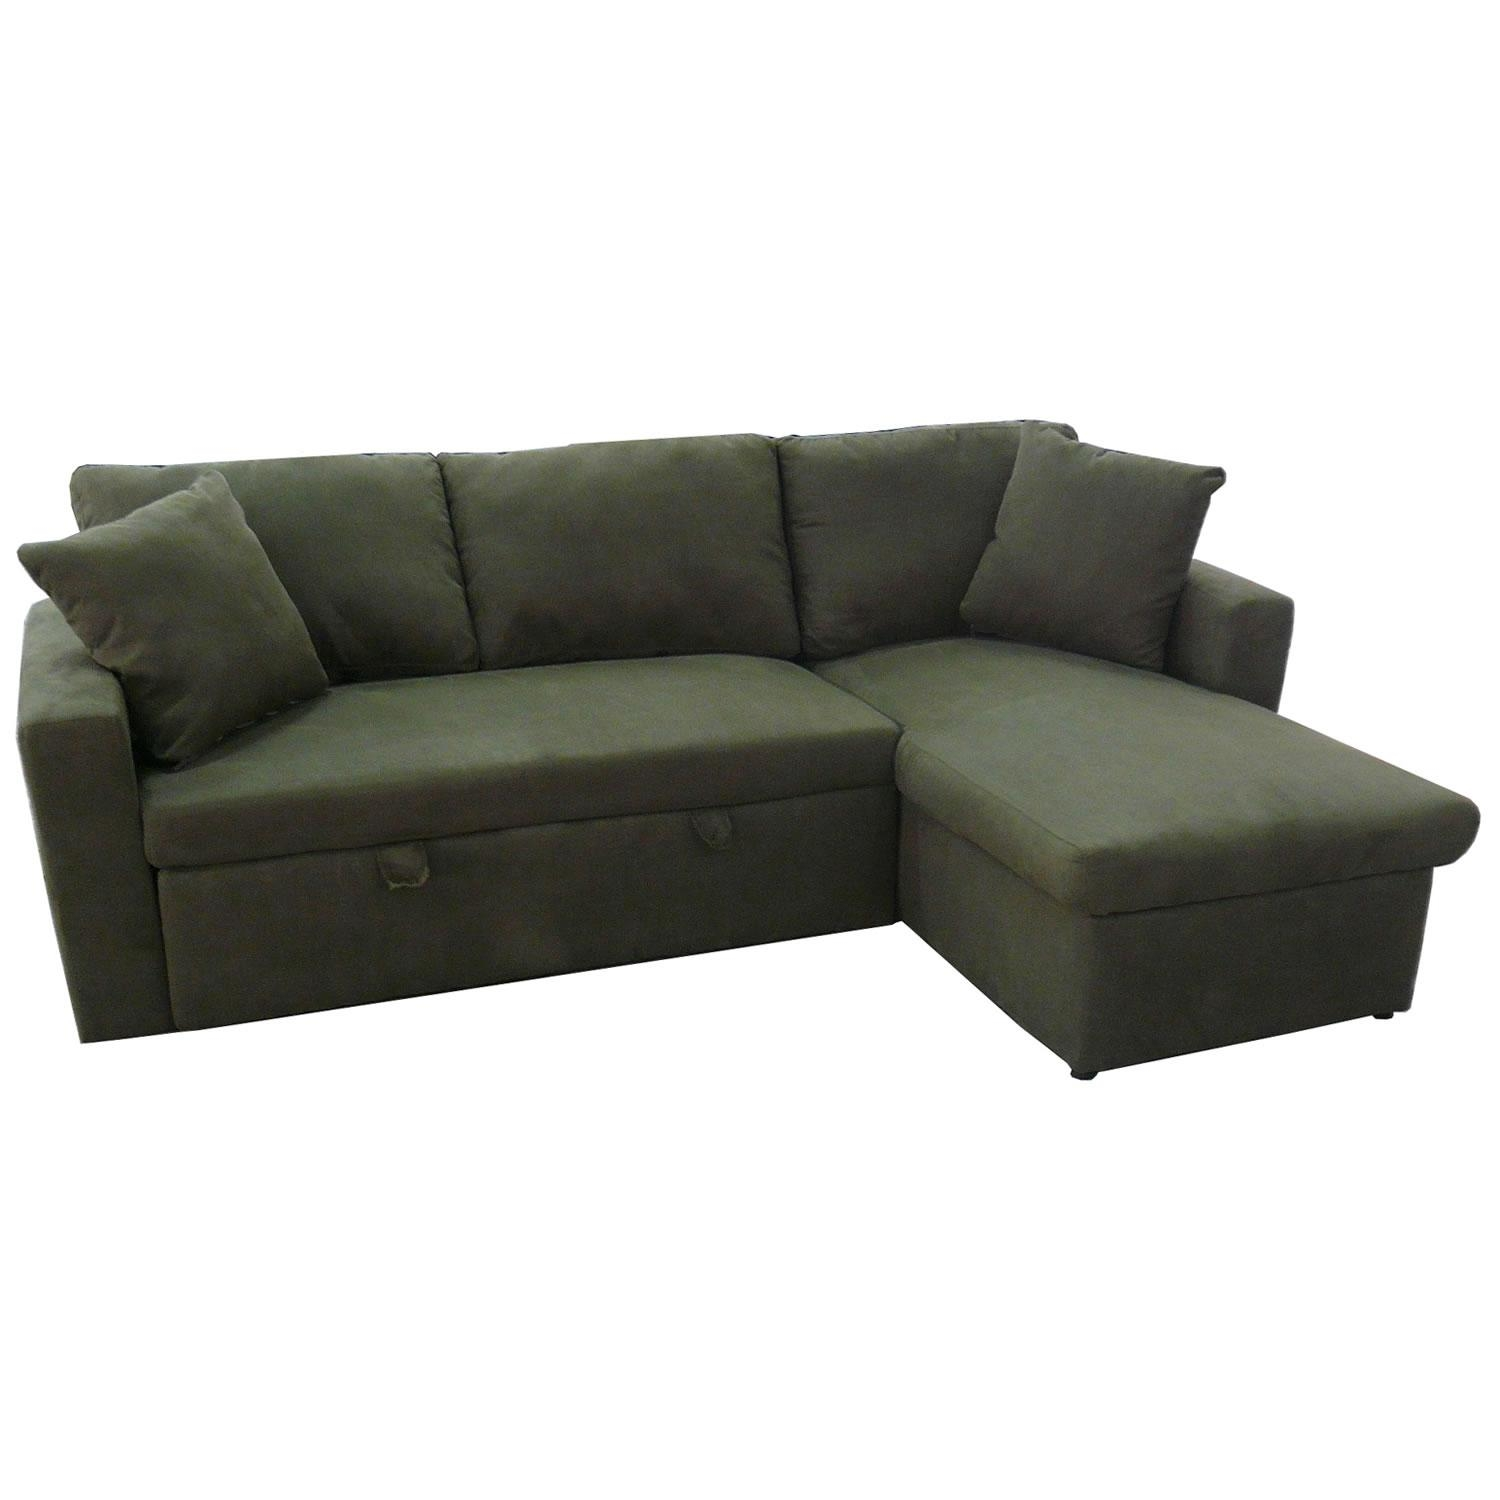 Milan Corner Sofa Bed With Storage Right Hand Grey – S3Net For Corner Sofa Bed Sale (Image 14 of 20)